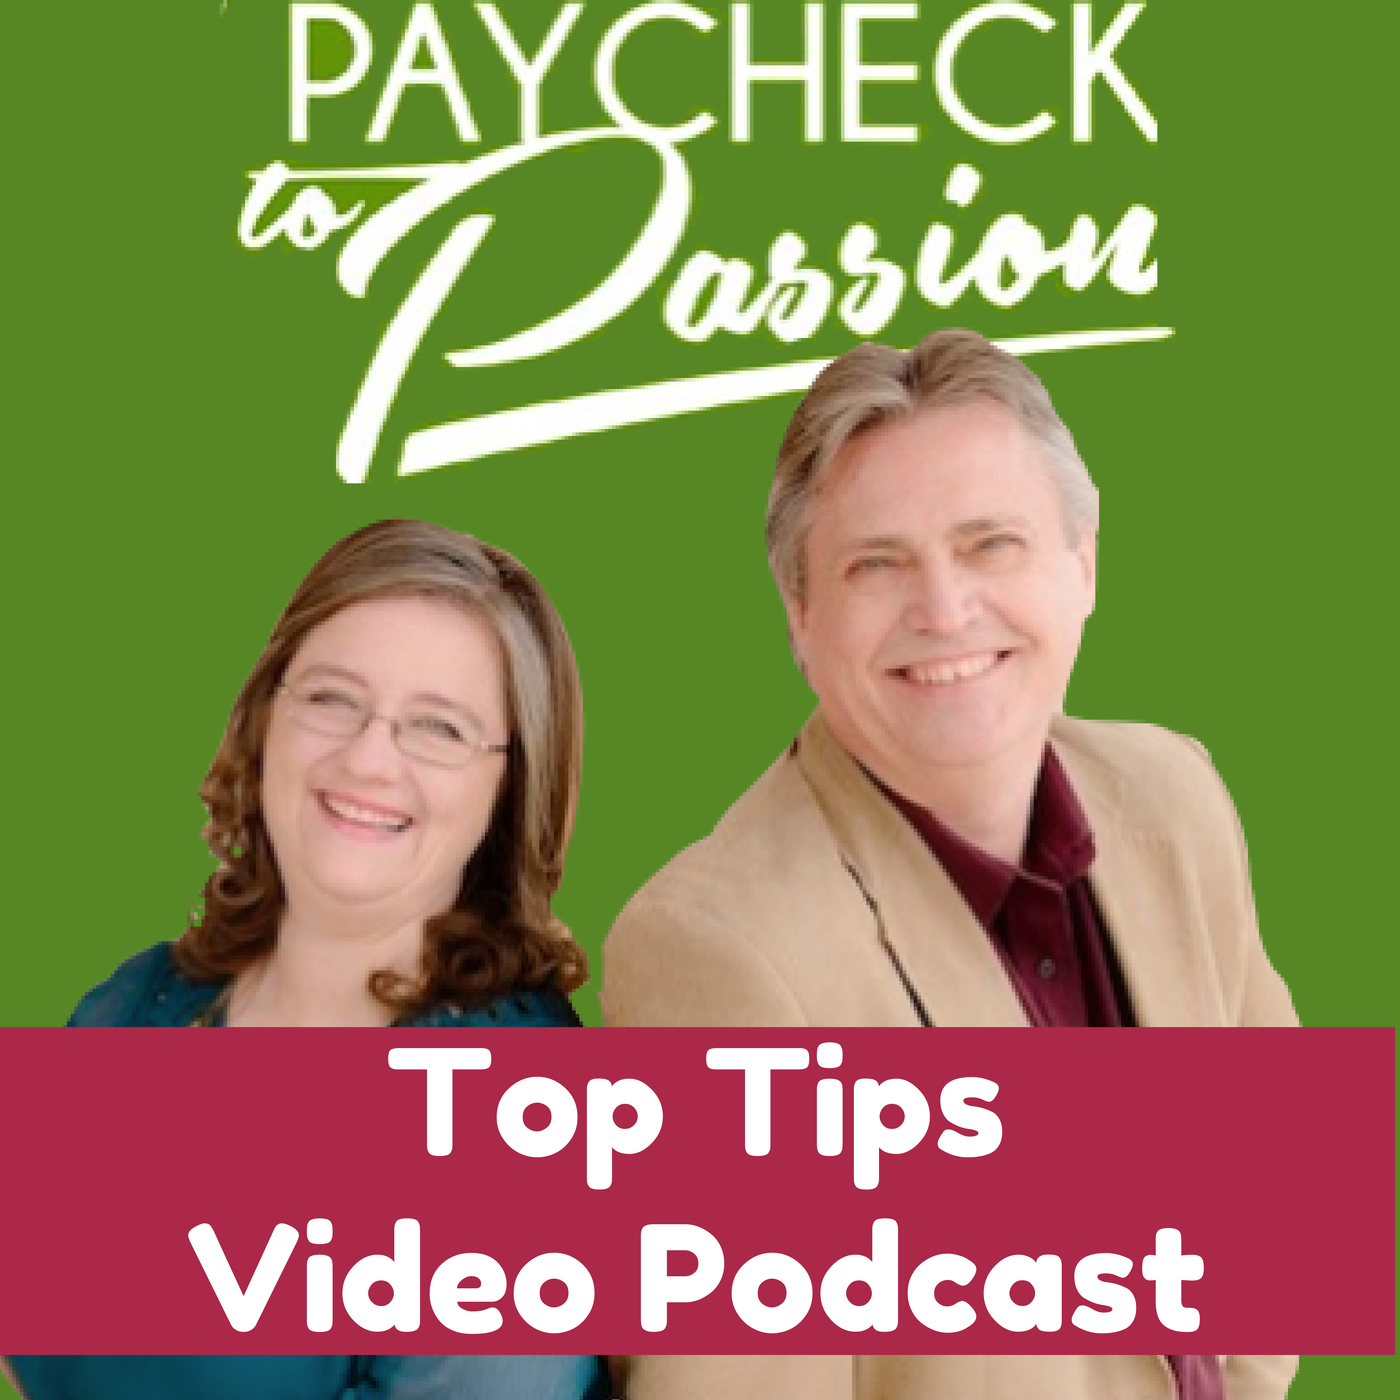 <![CDATA[Paycheck to Passion Top Tips Video Podcast ]]>